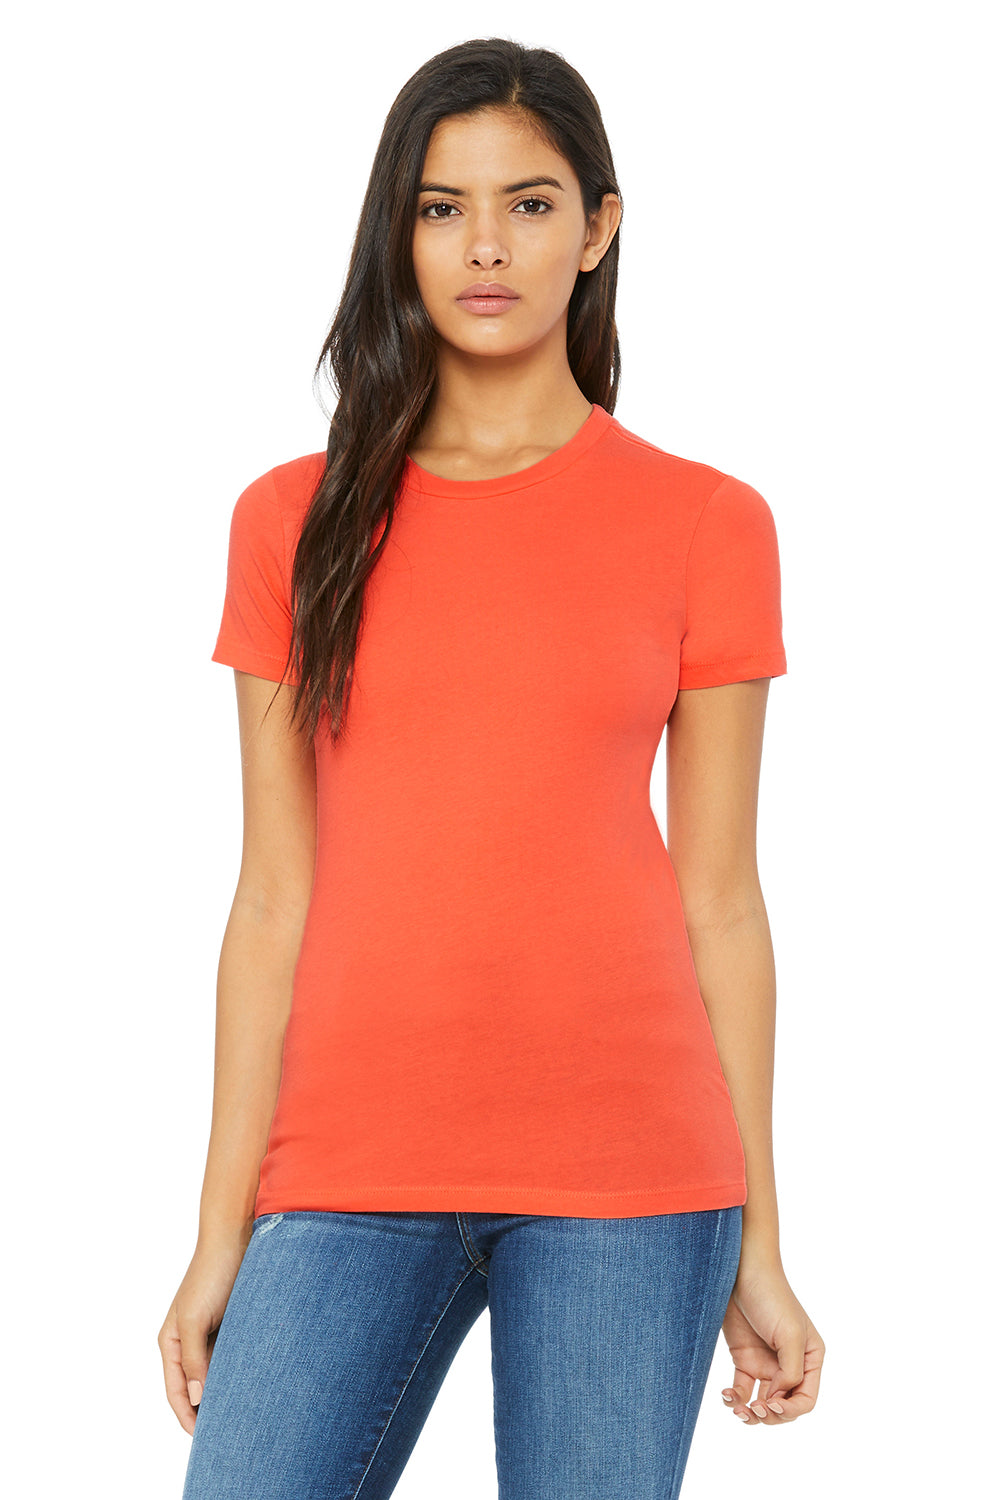 Bella + Canvas 6004 Womens The Favorite Short Sleeve Crewneck T-Shirt Coral Orange Front